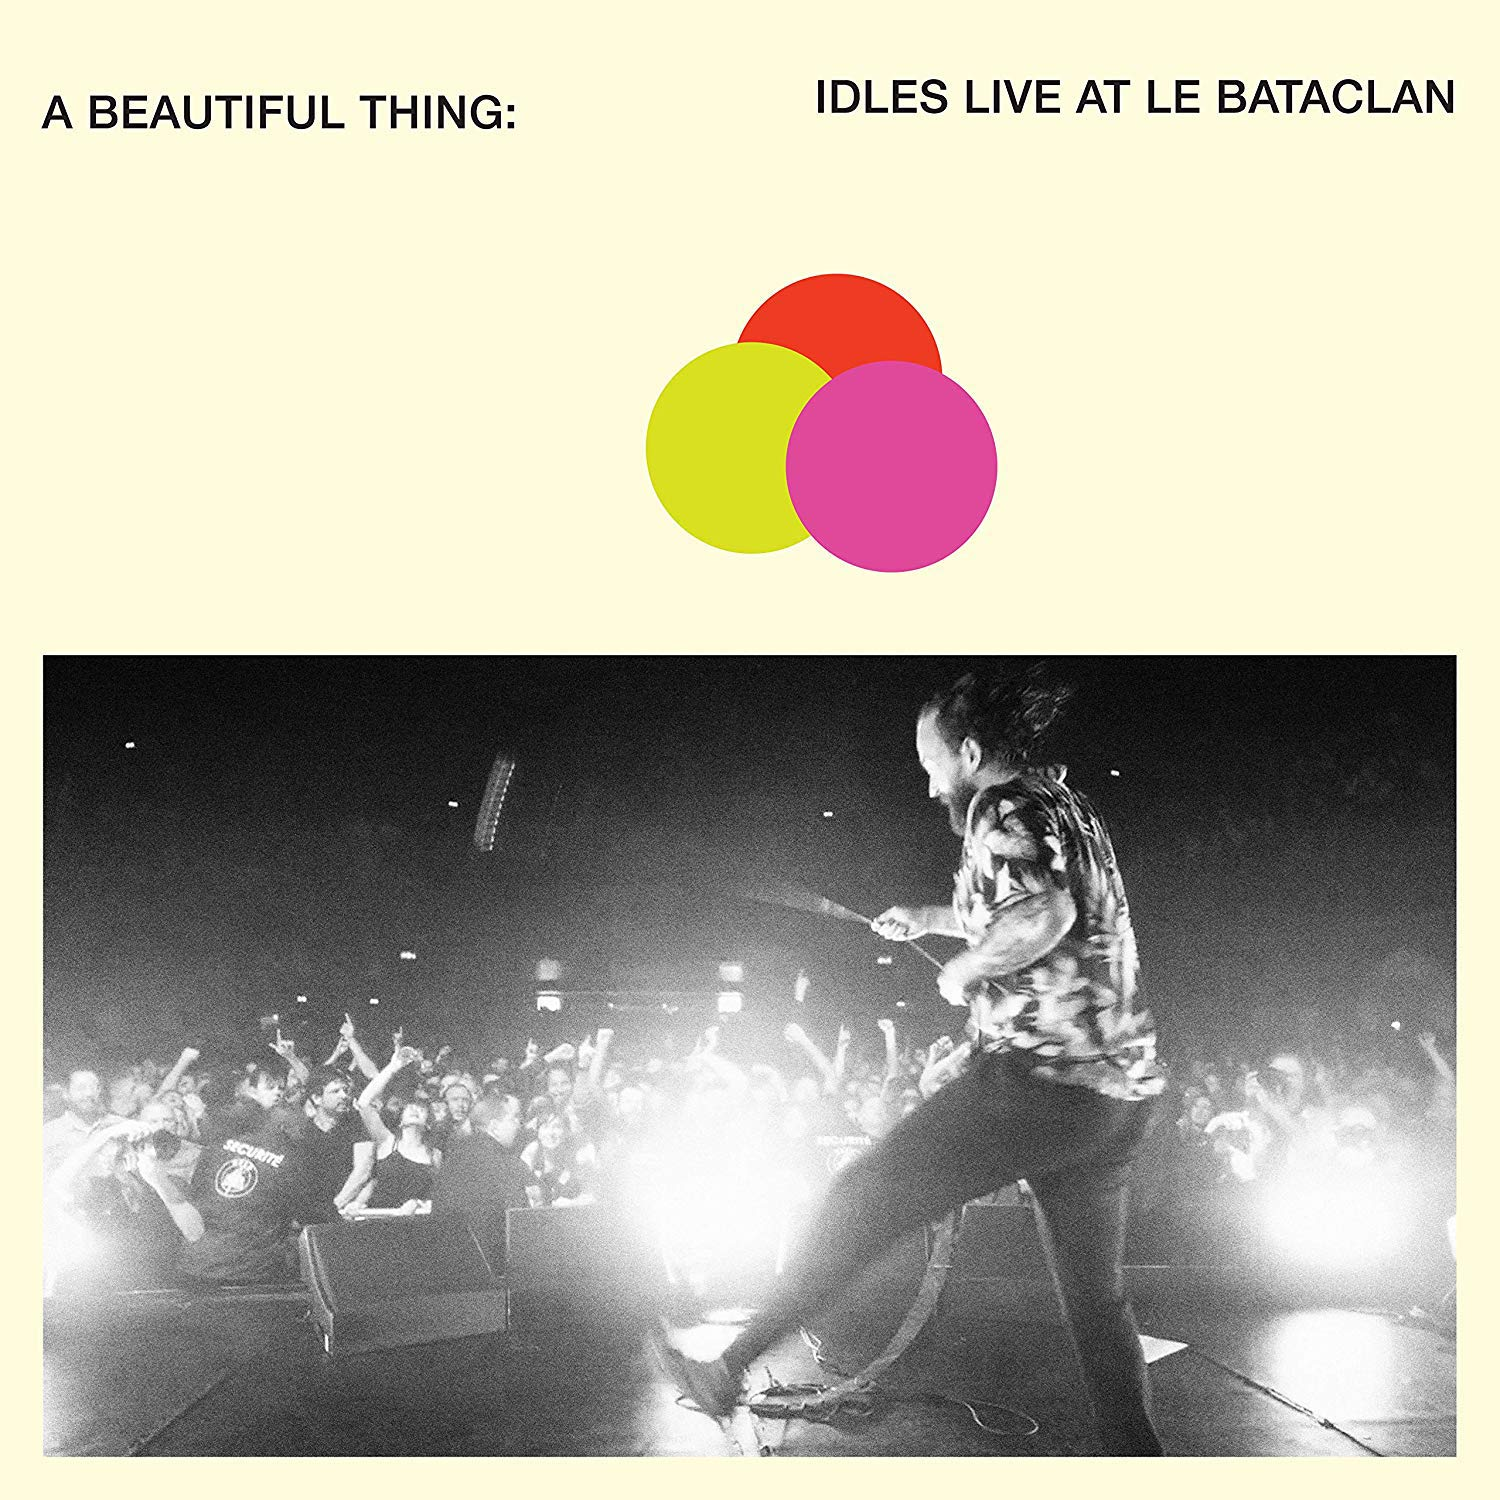 IDLES - A Beautiful Thing - Idles Live At Le Bataclan (2019) [FLAC] Download